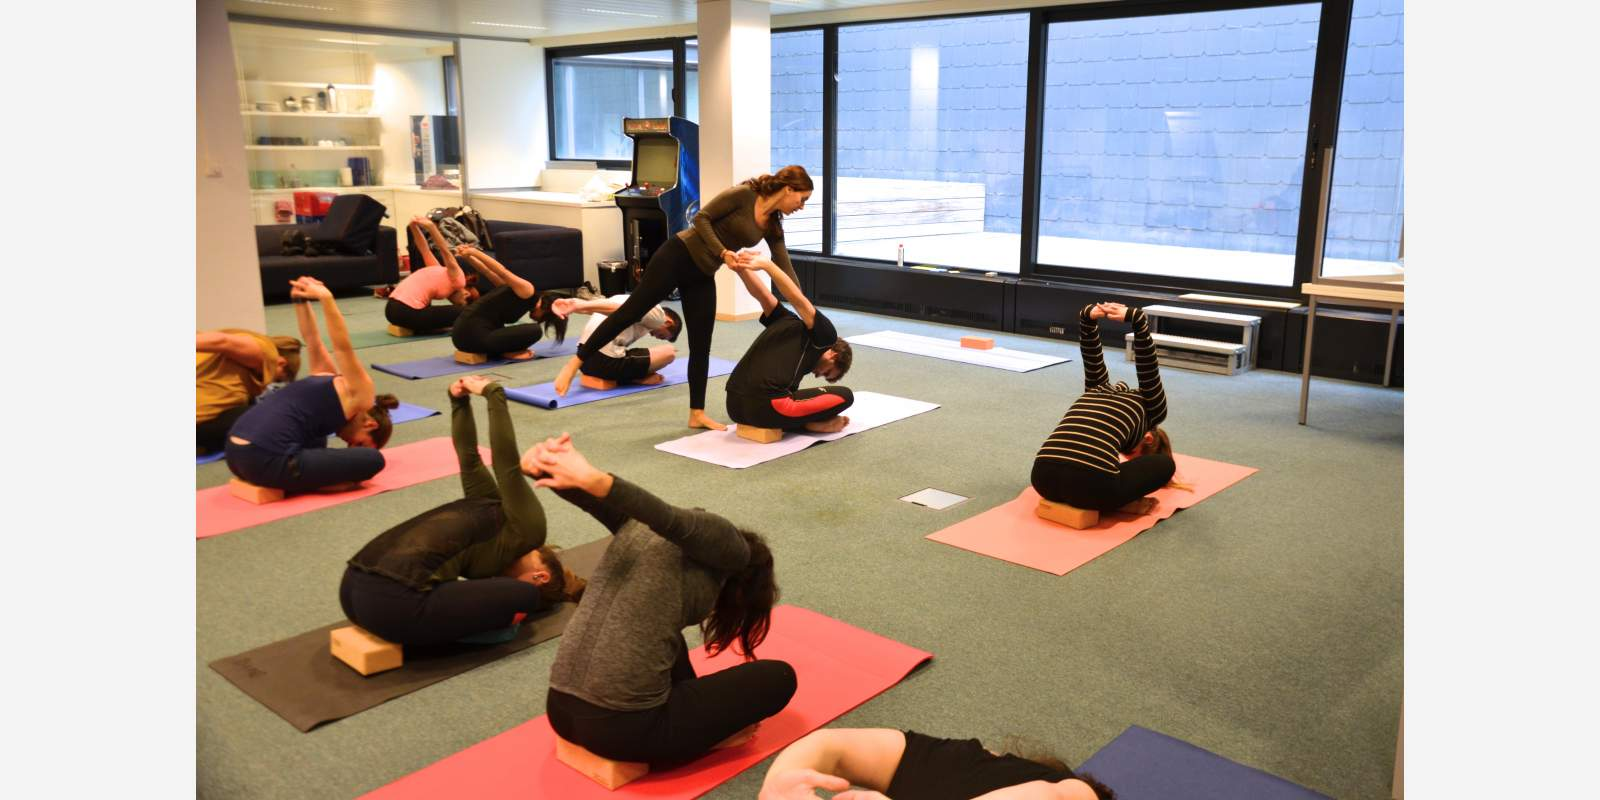 Office yoga